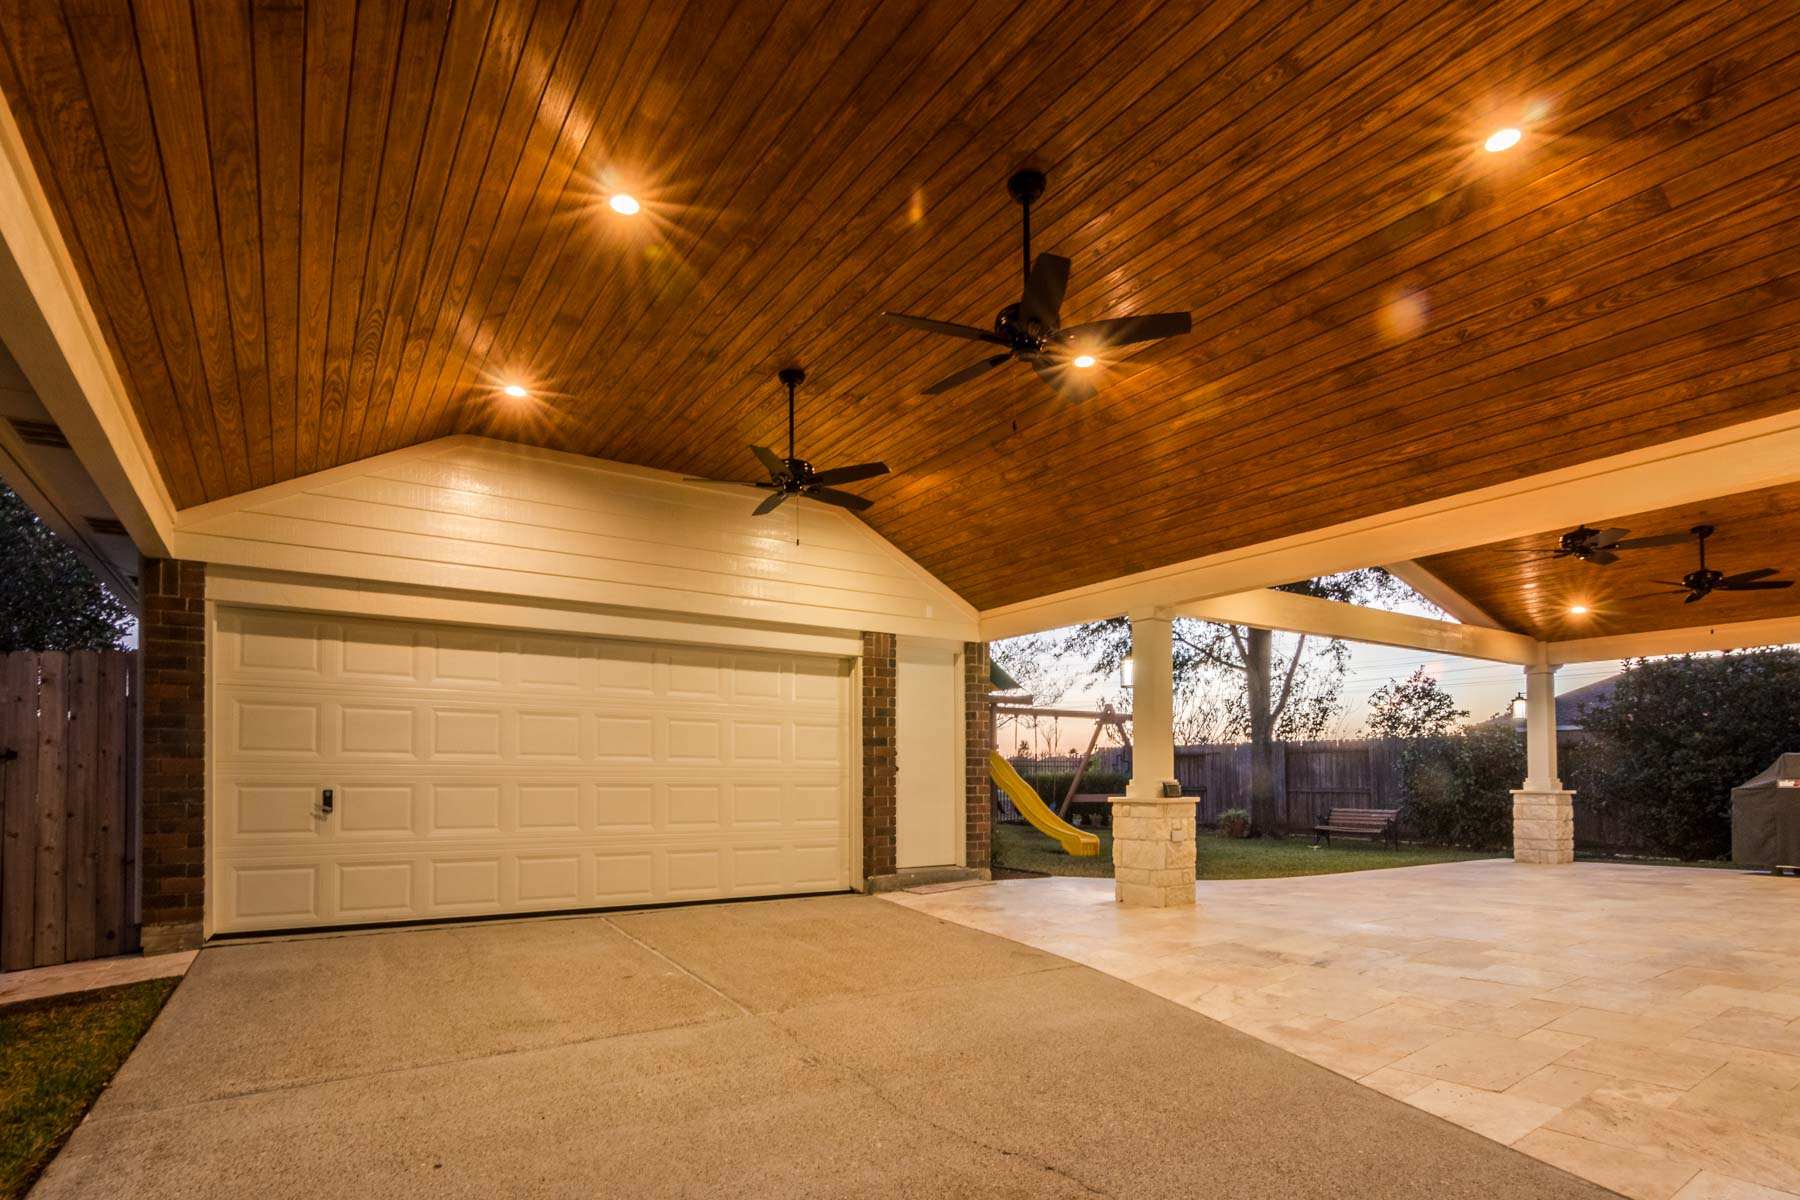 Flagstone Patio Patio Cover And Carport In Jersey Village - Hhi Patio Covers